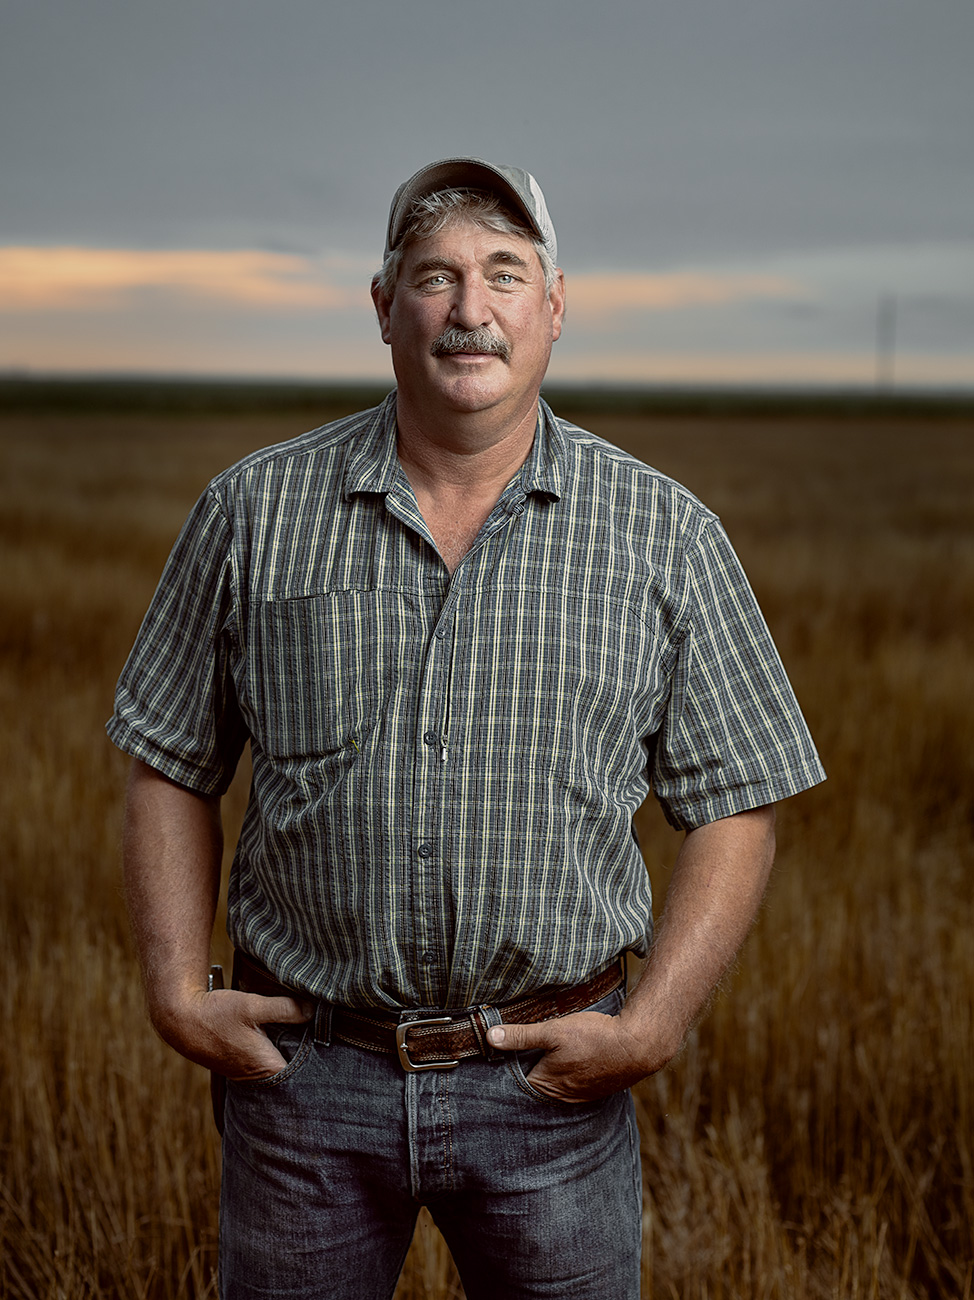 A photo of a farmer standing in a harvested field